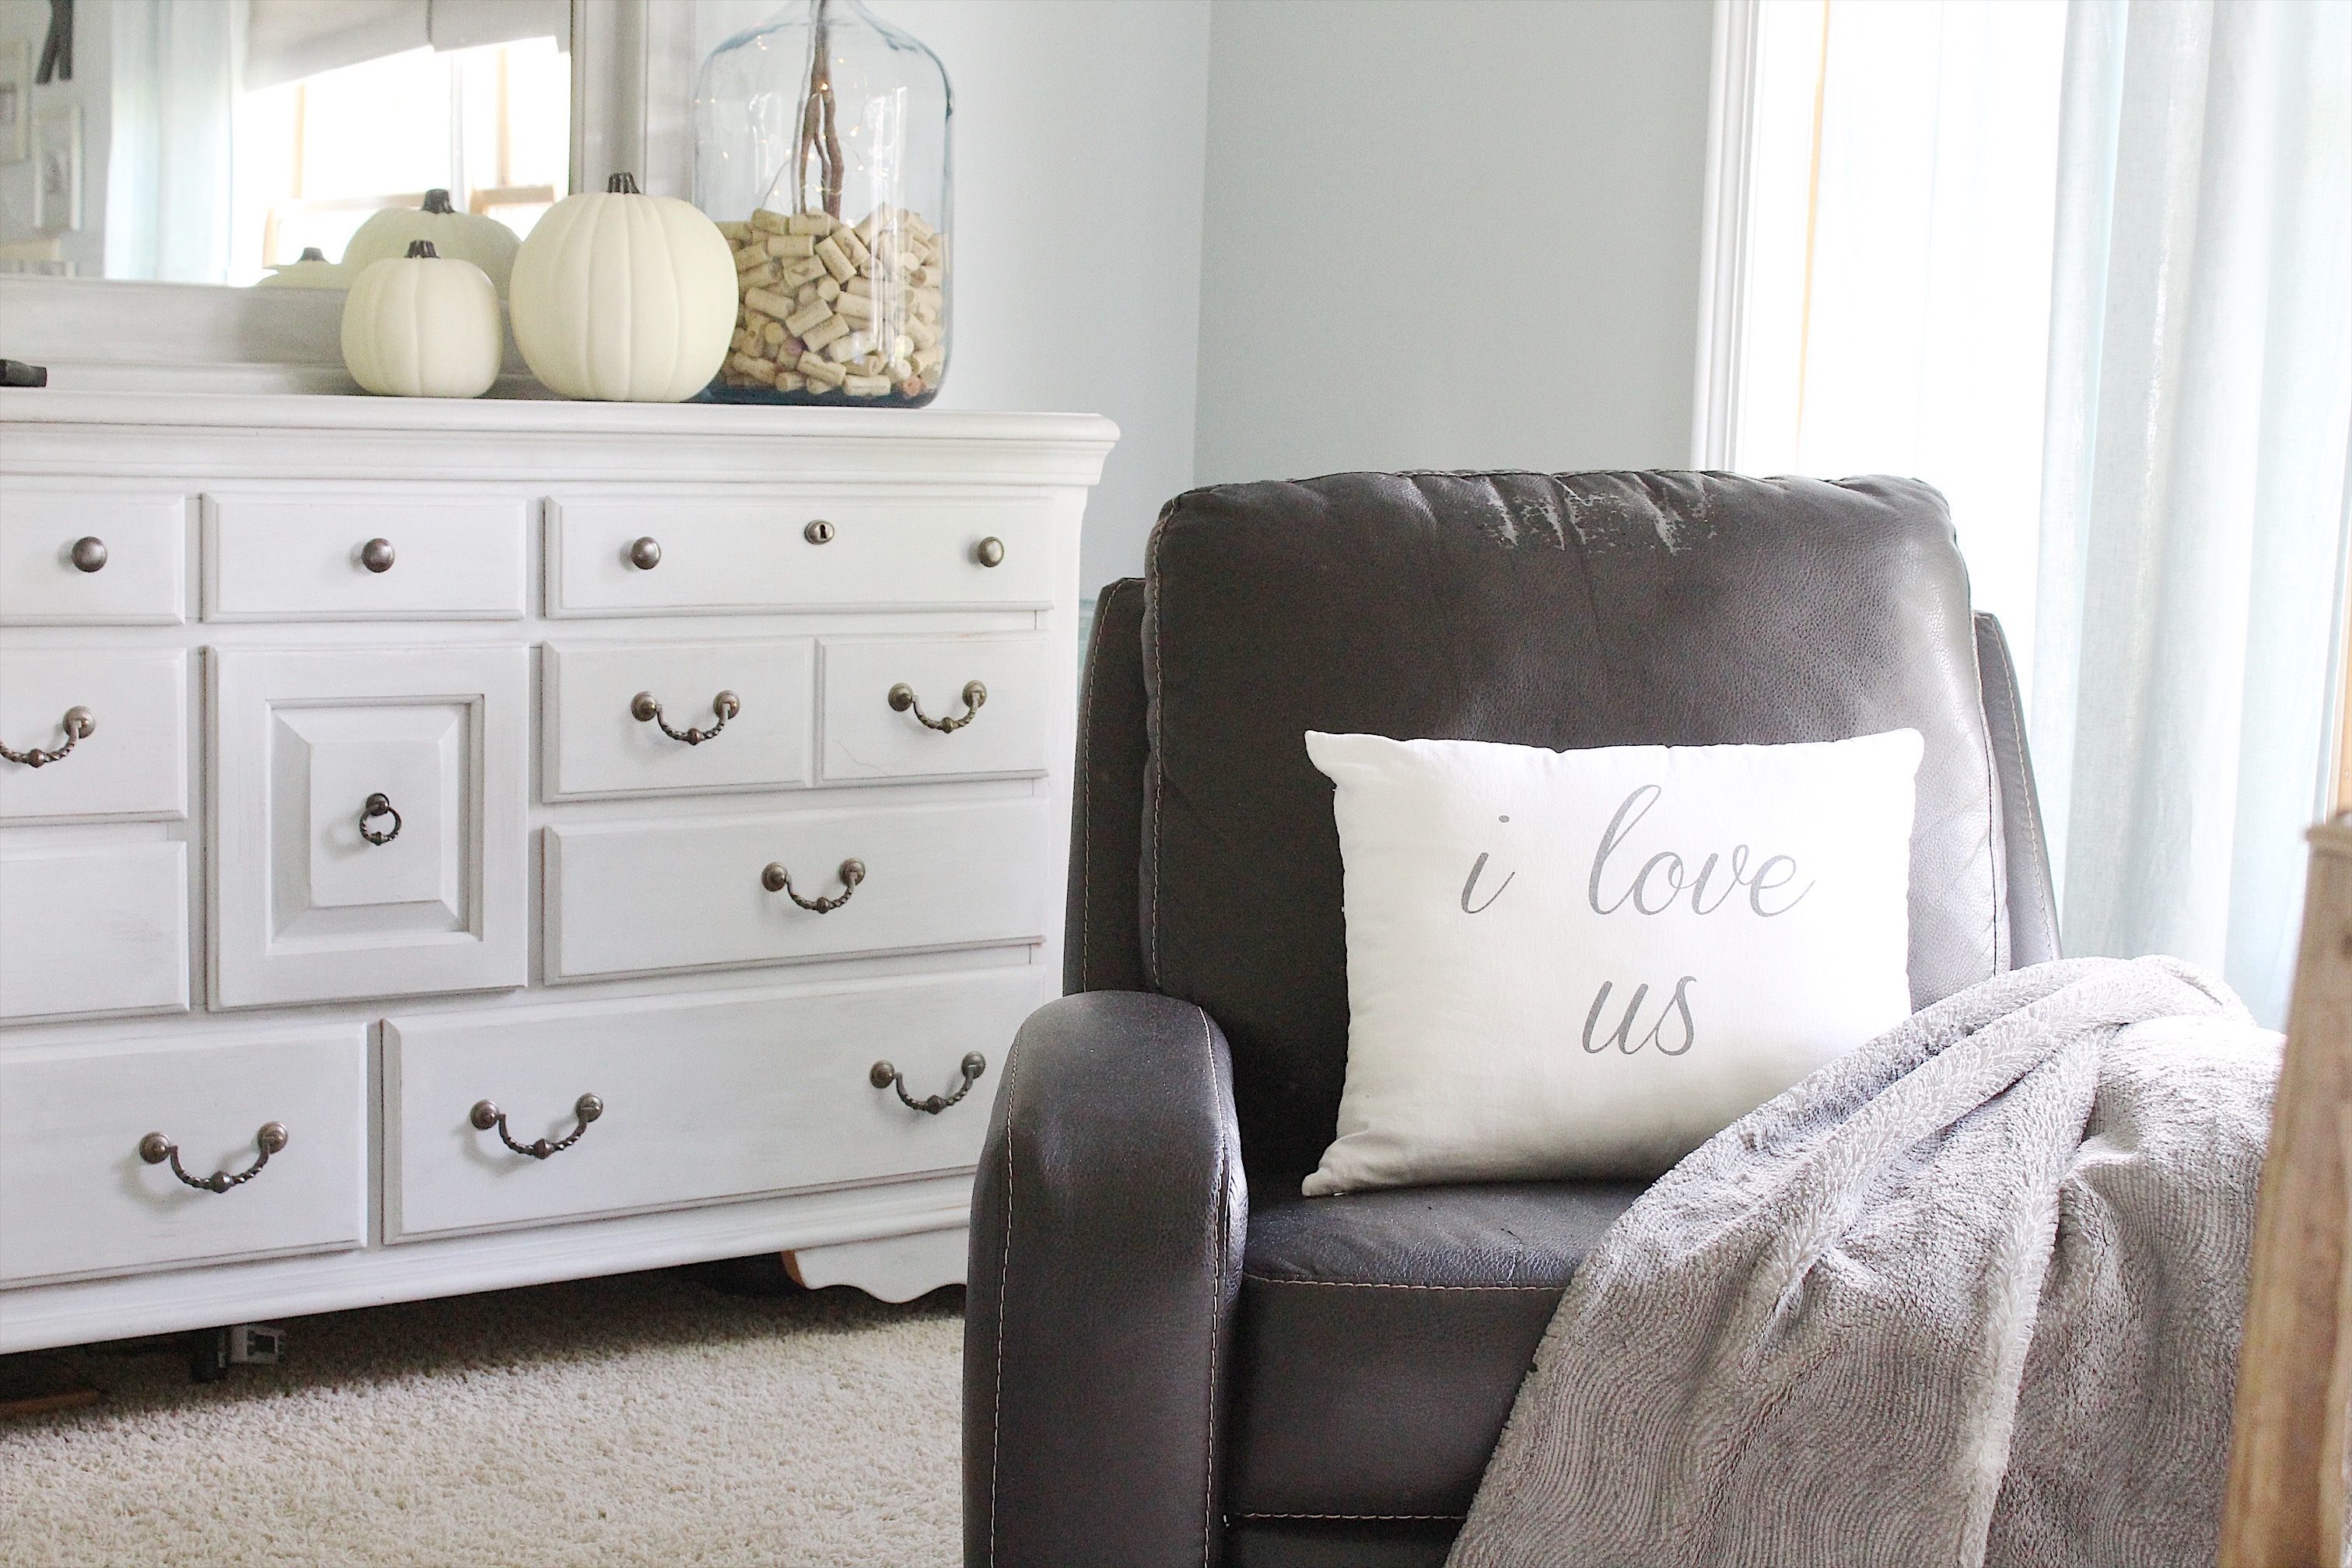 Cozy Bedroom Reveal and a Chalk Painted Pillow   Simple Cozy Charm I found this arrangement I put together last year  and even prettied up our  master bathroom